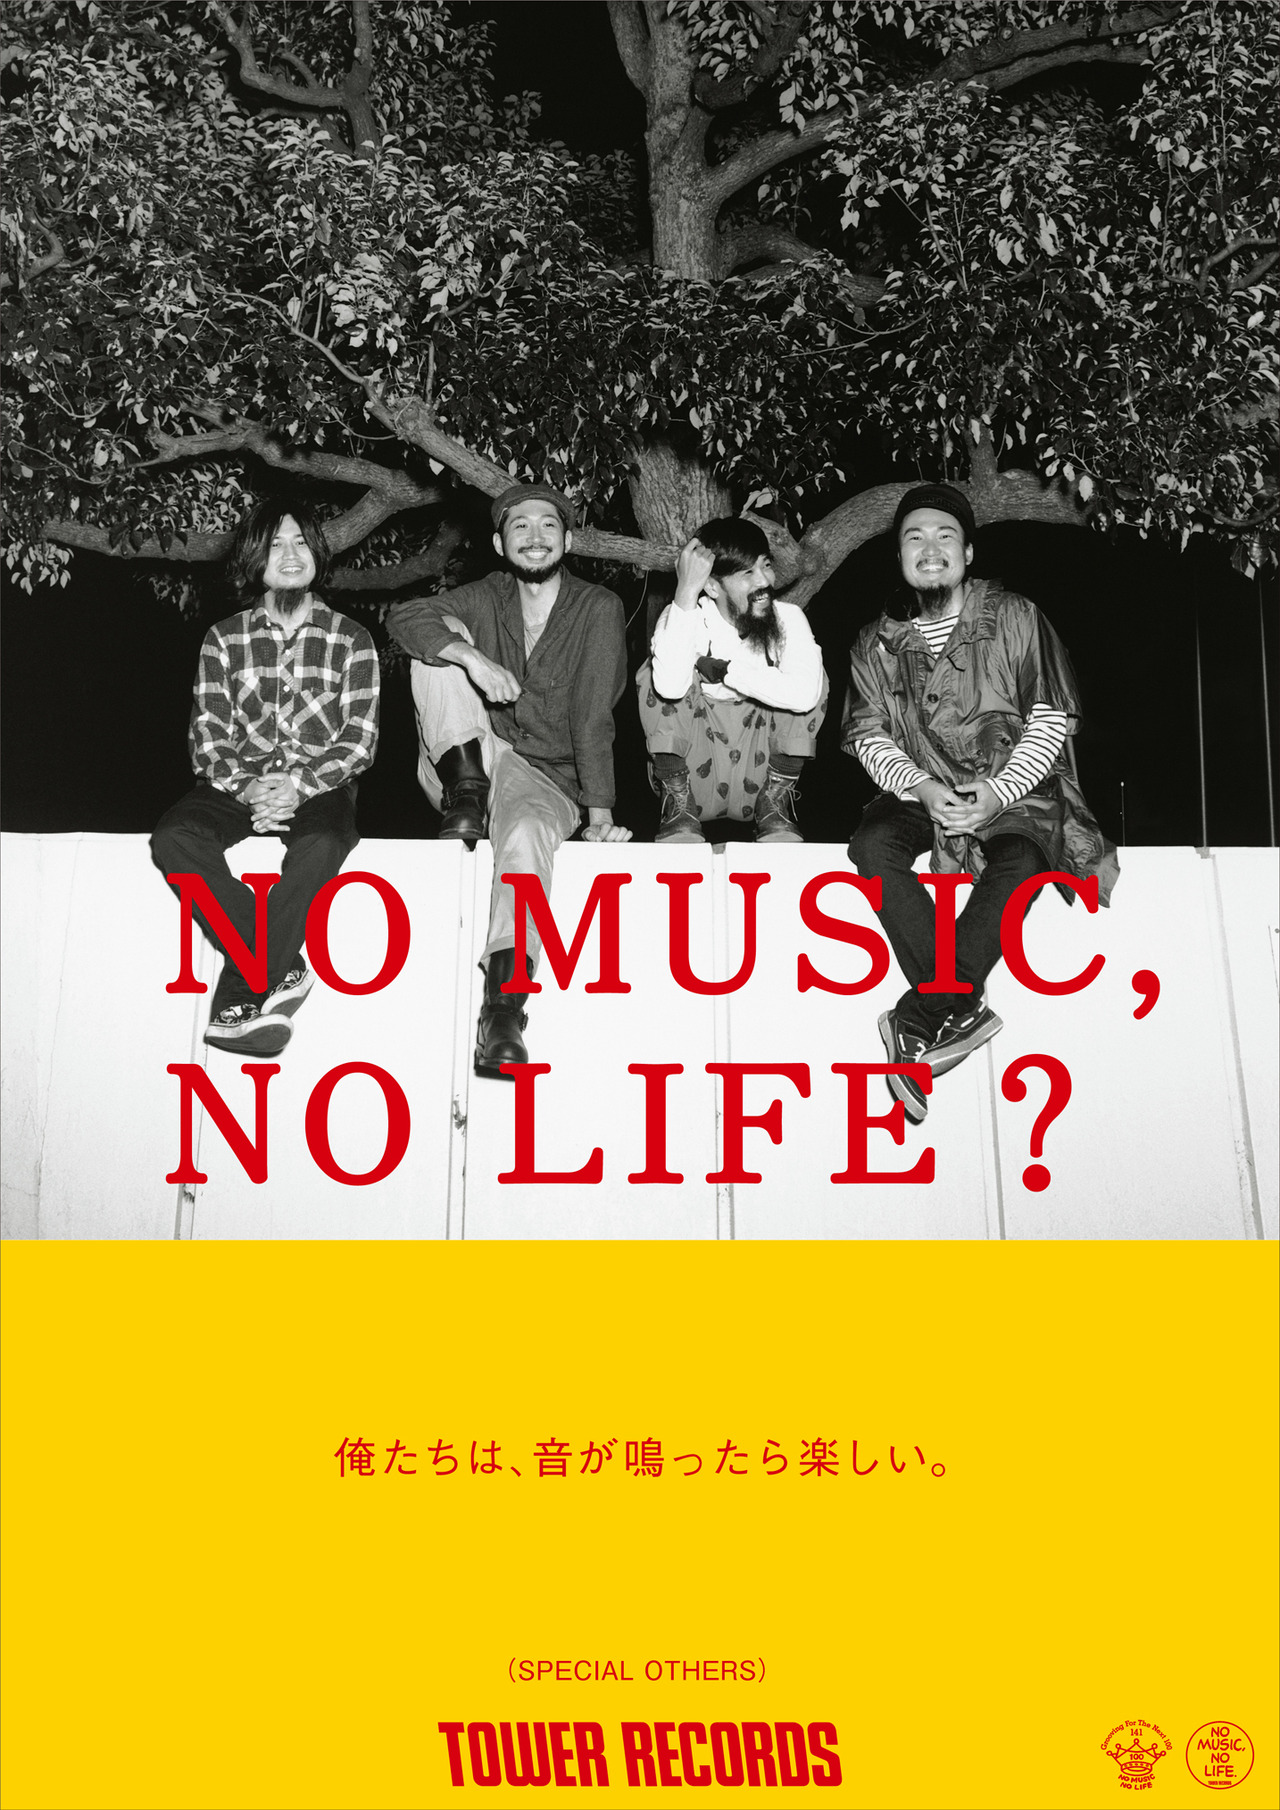 http://towerrecordsjapan-nmnl.tumblr.com/post/31377828957/special-others-2012-9-11